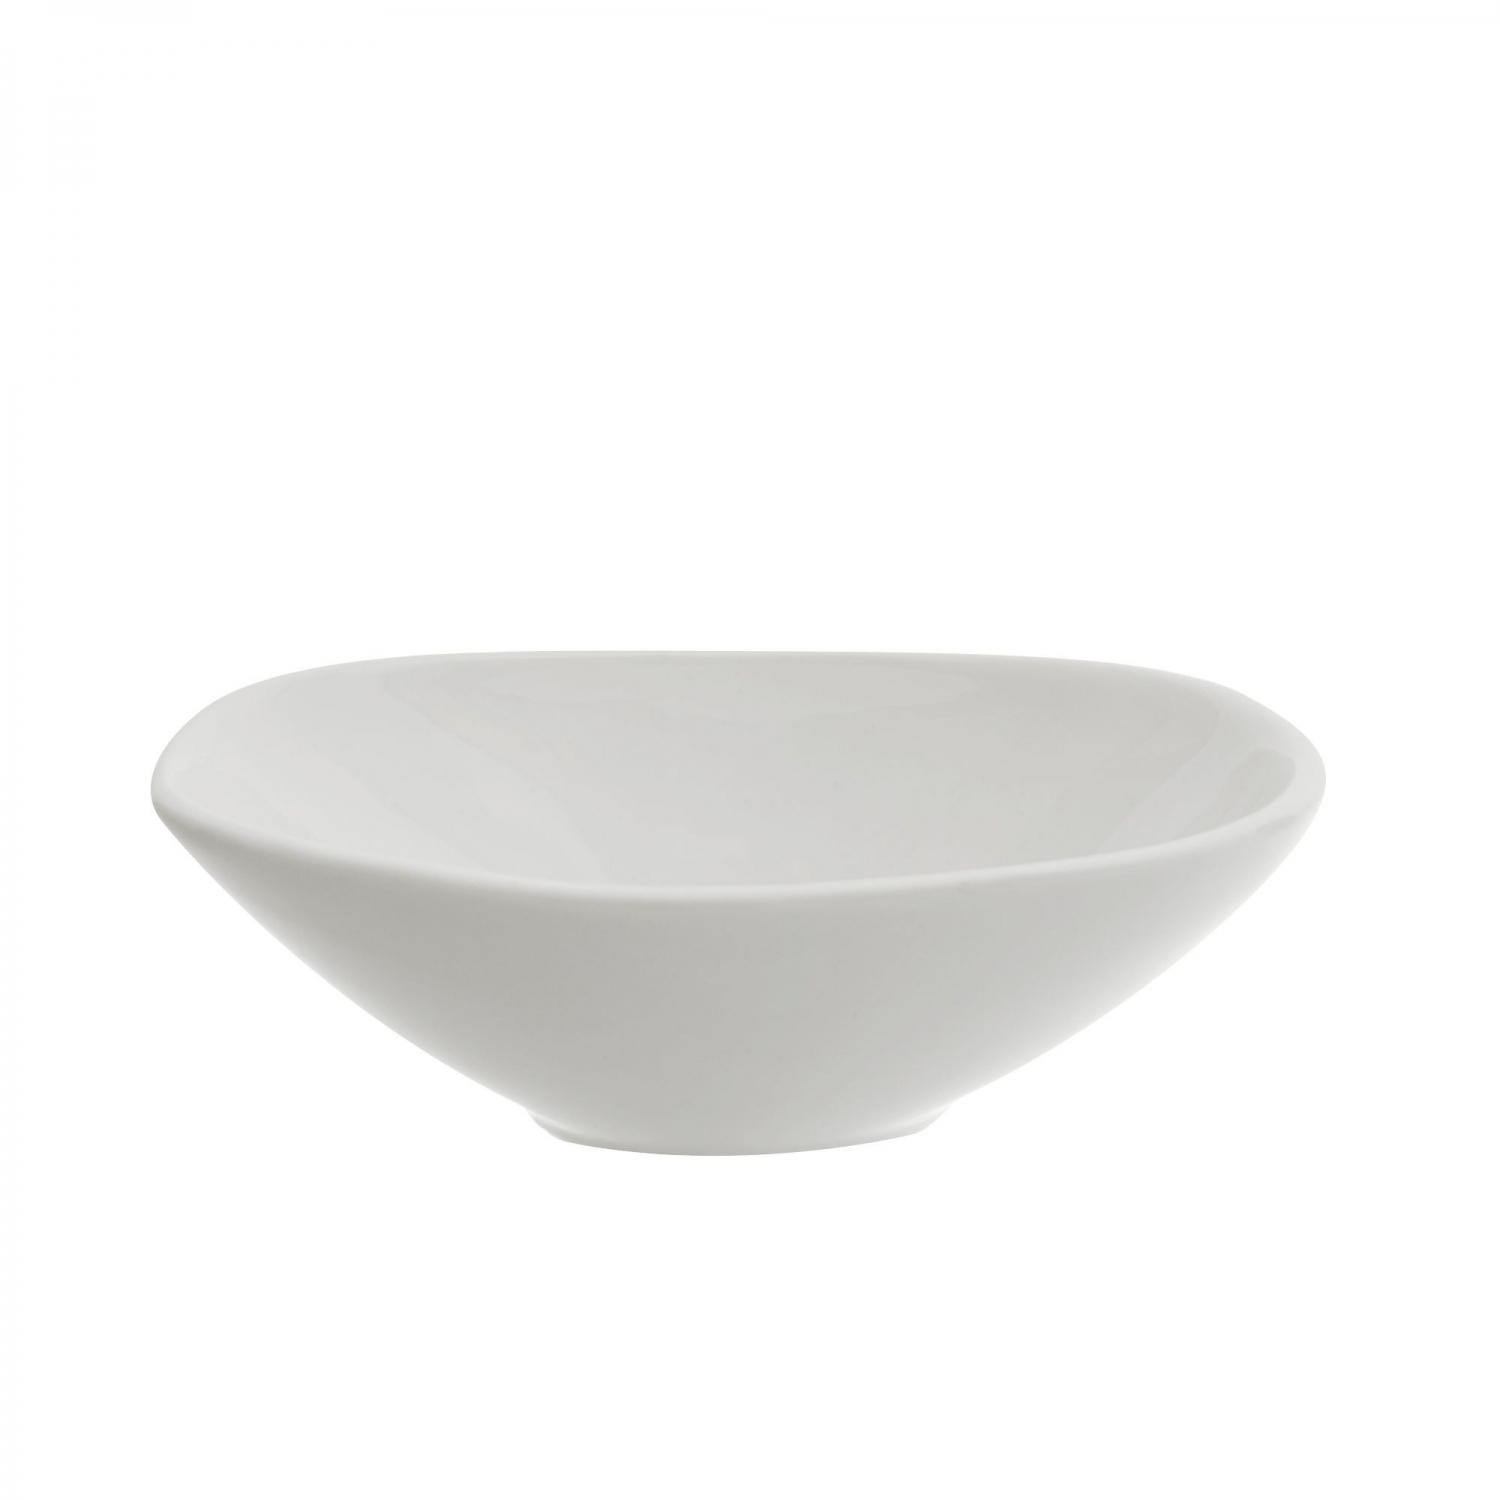 10 Strawberry Street RVL0031 Royal Oval White Bowl 7 oz.